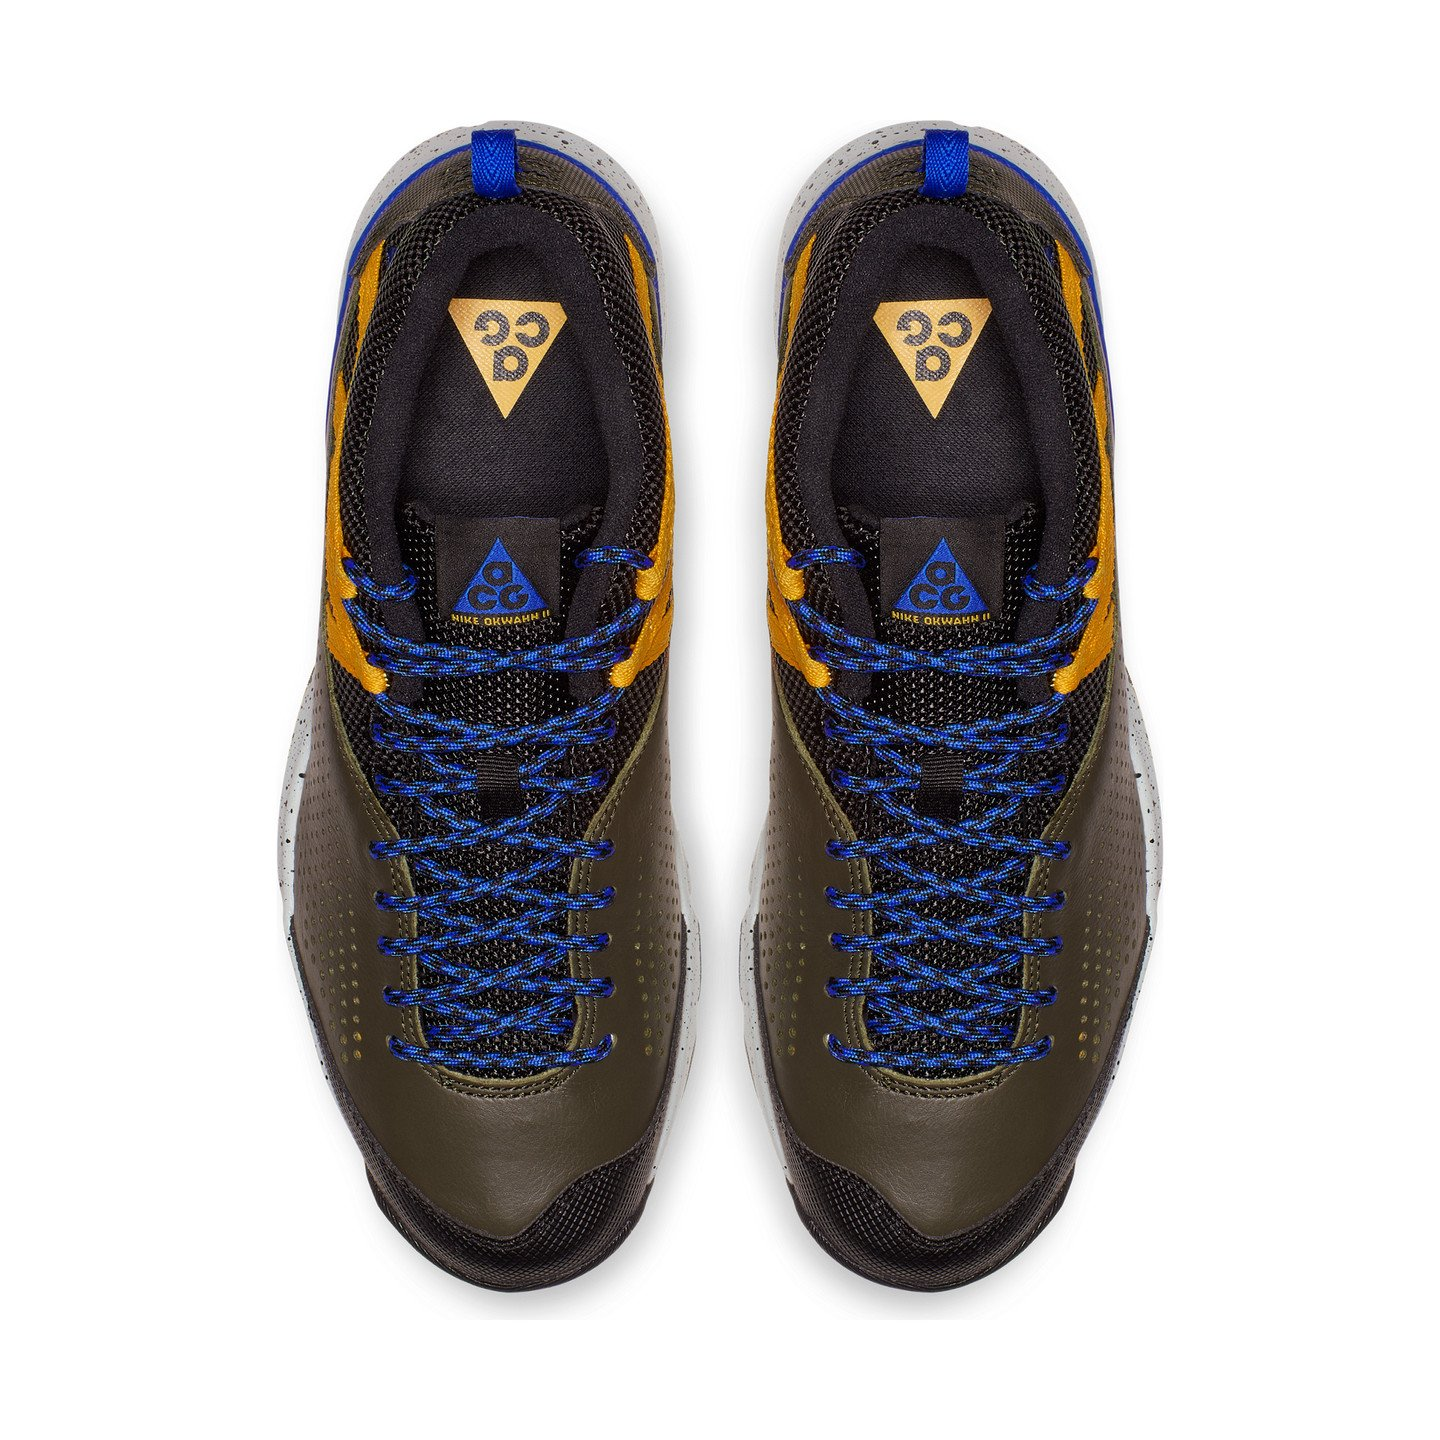 Nike ACG Okwahn II Sequoia / Racer Blue / Yellow 525367-300